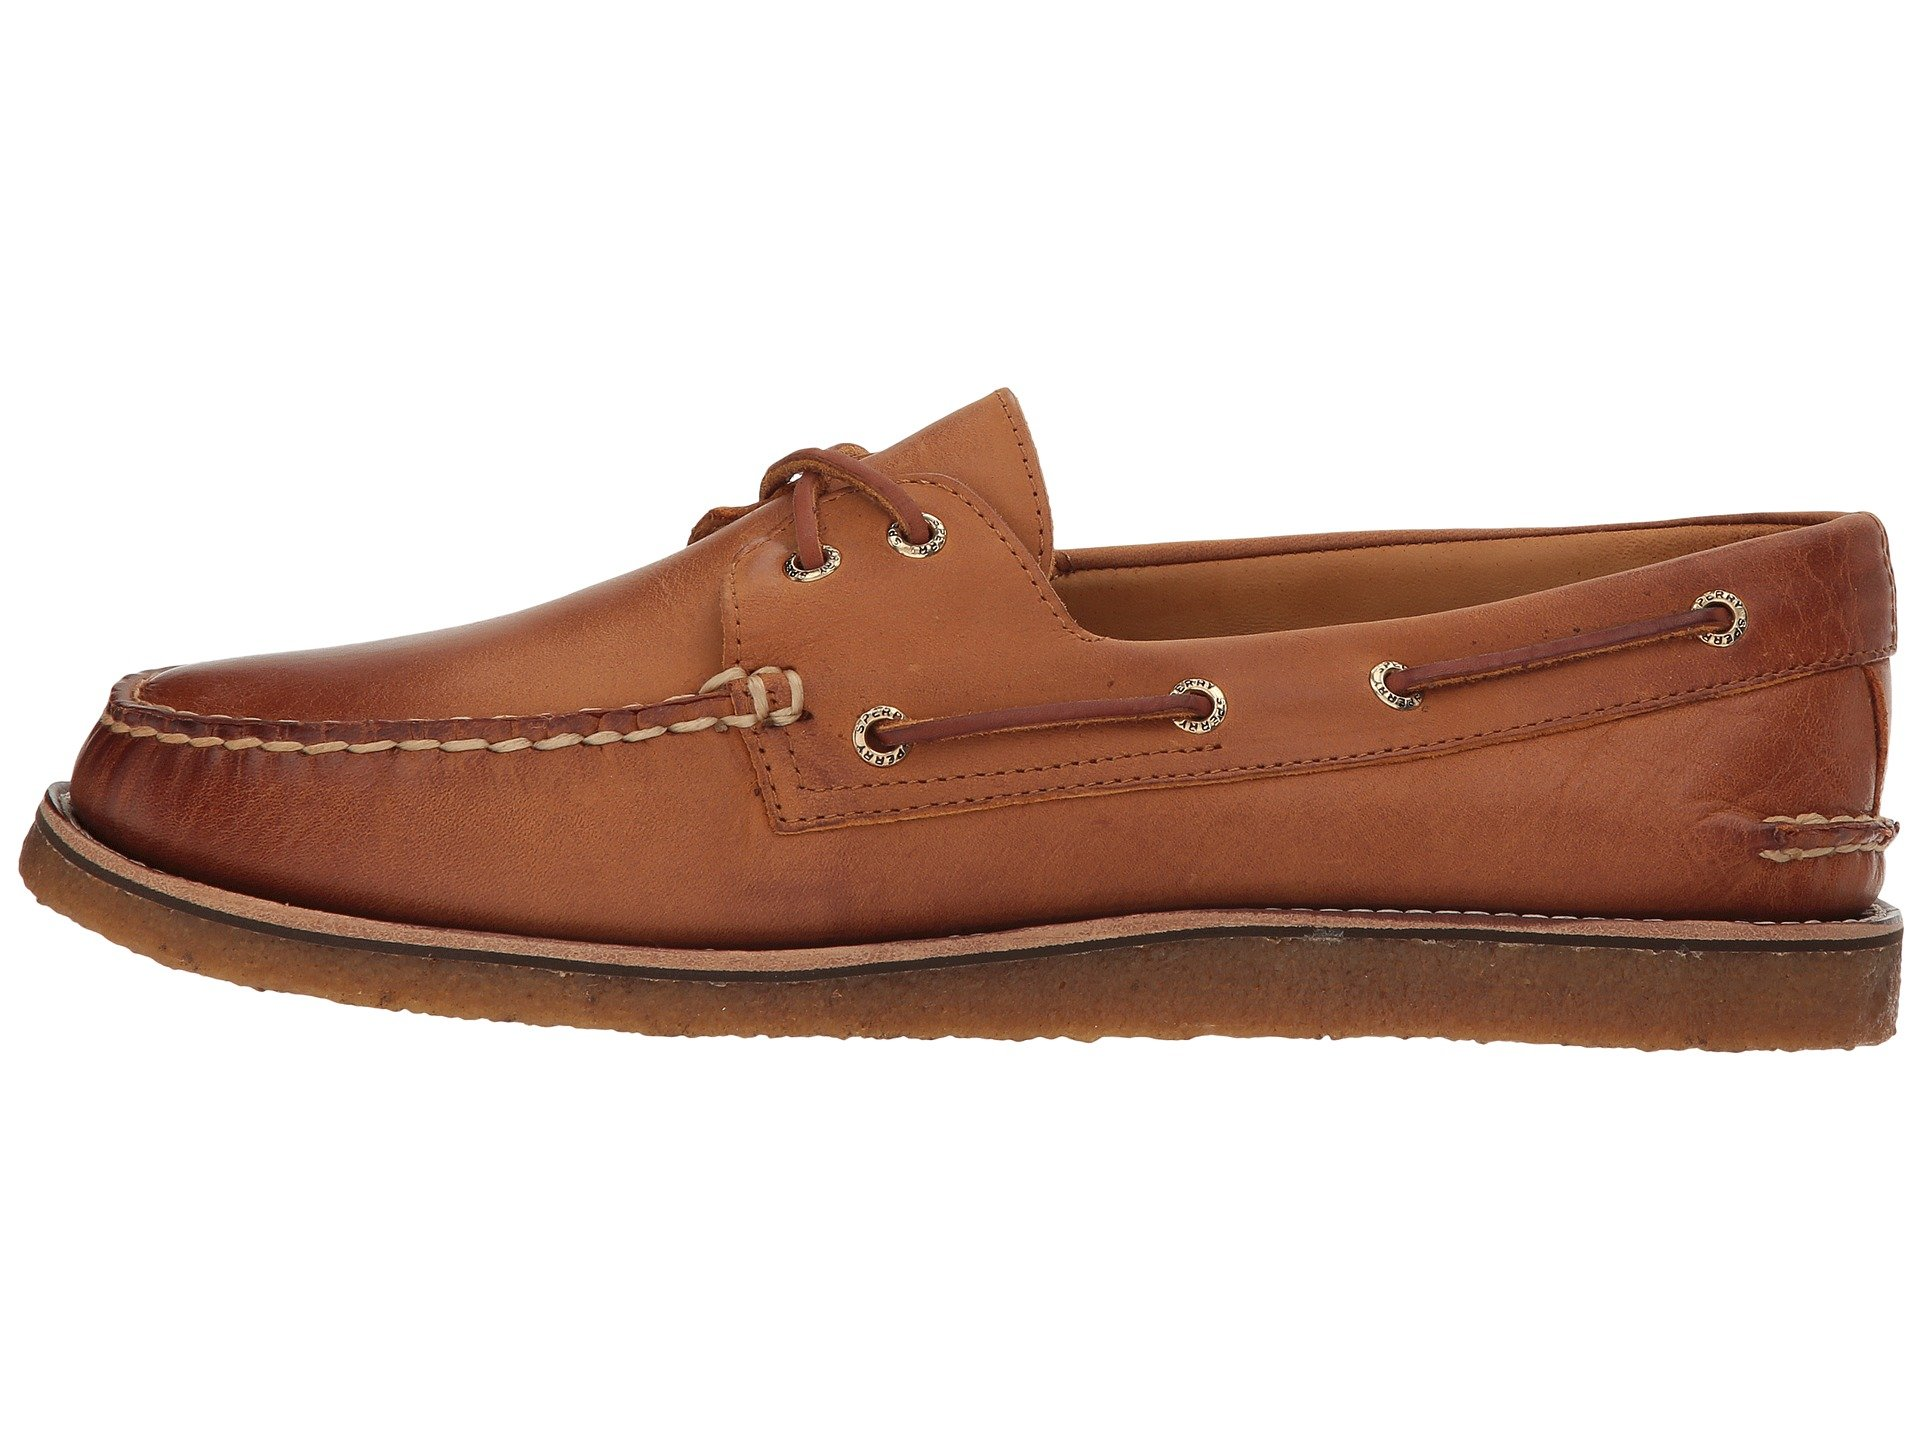 2 o Crepe A Sperry eye Tan Gold qEtfwf